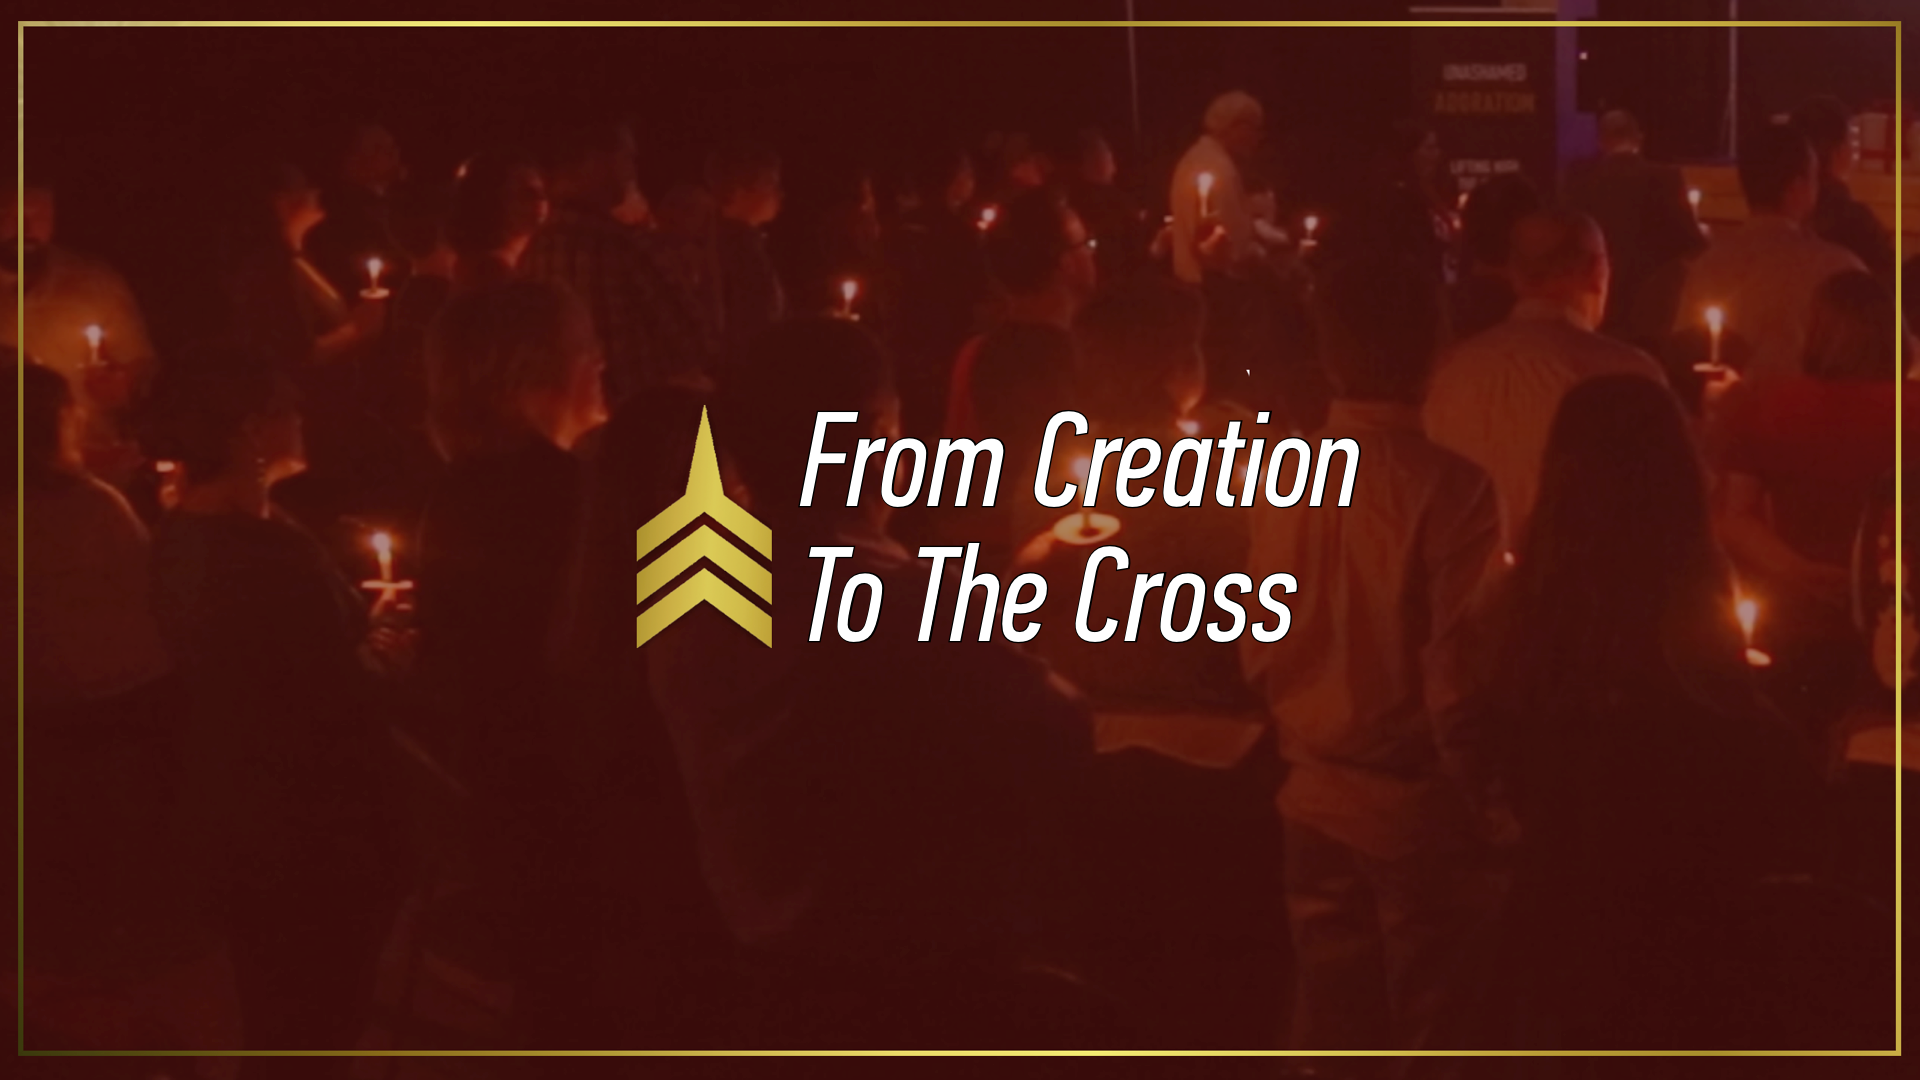 20161204 From Creation To The Cross.png